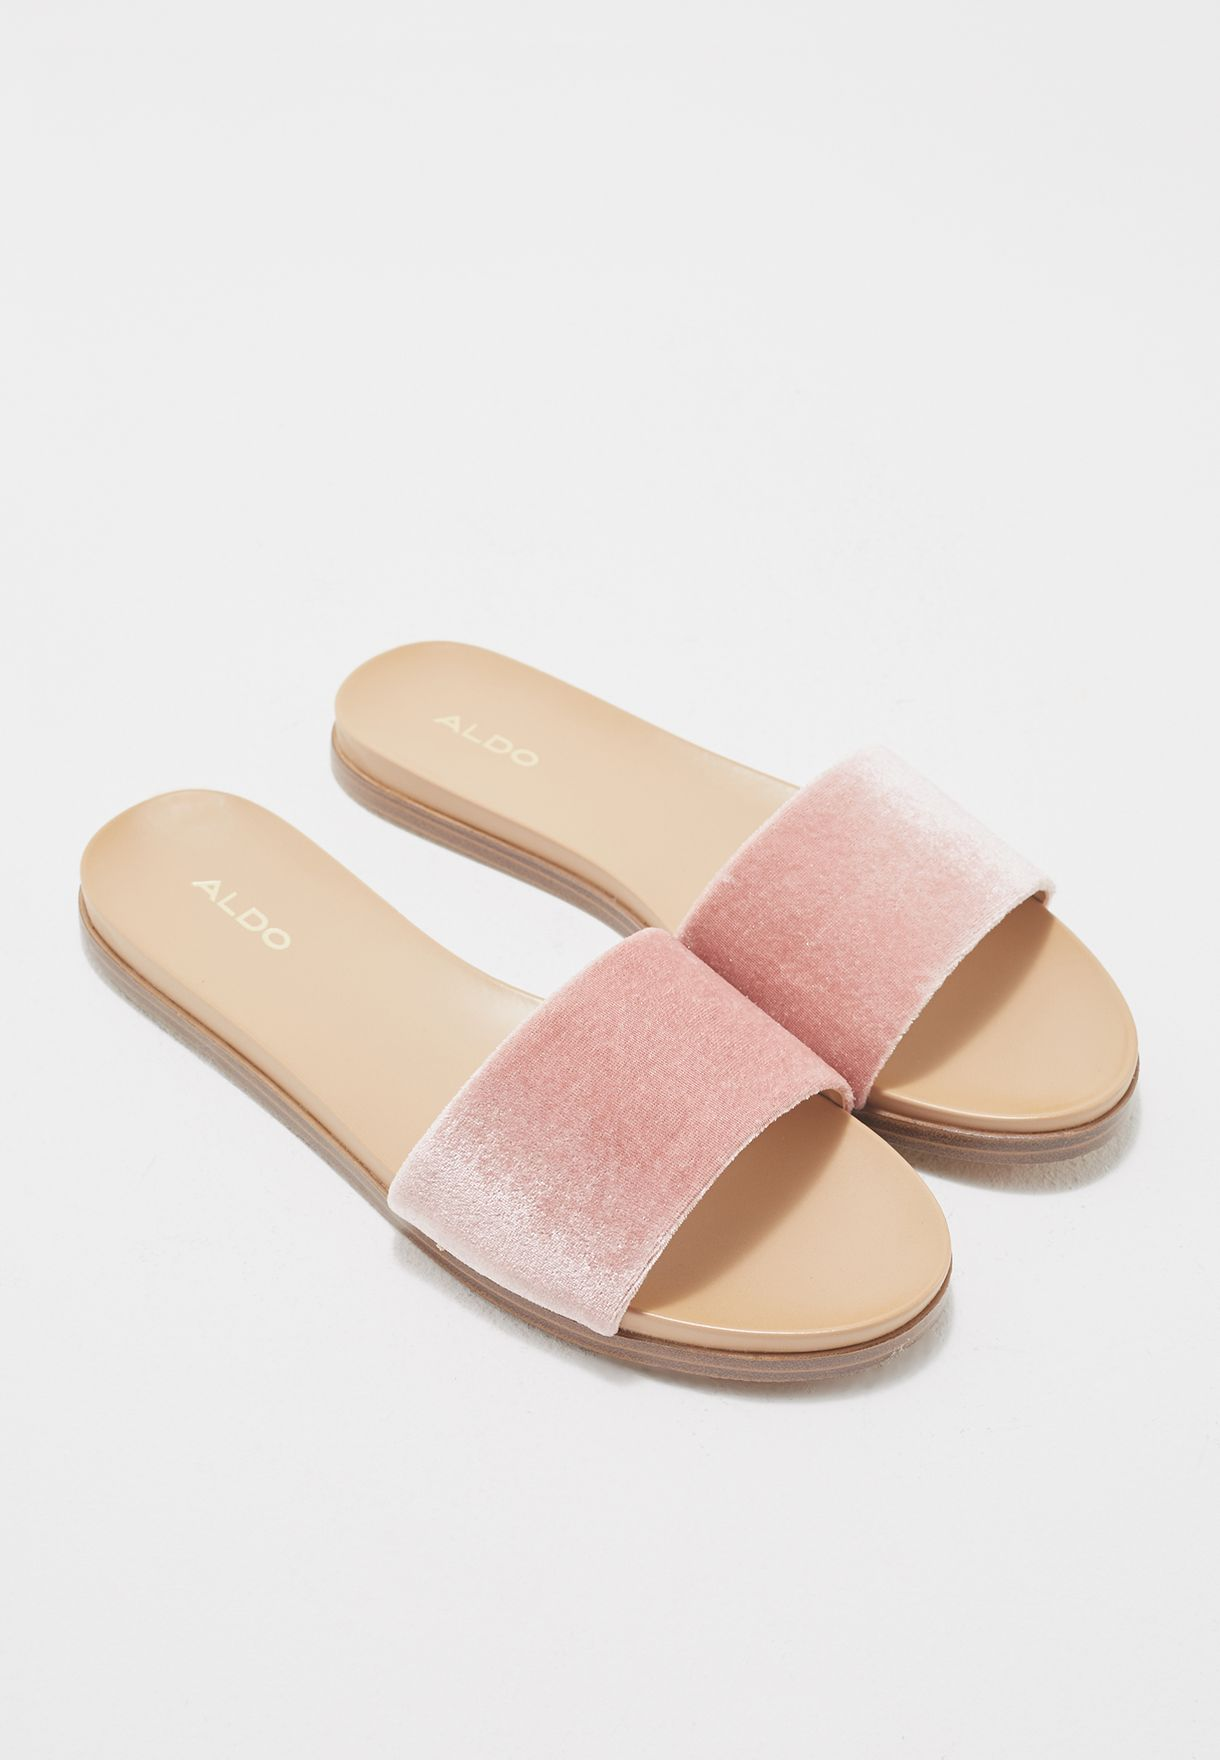 17f3f0b85b9 Shop Aldo pink Fabrizzia Slide FABRIZZIA U56 for Women in Oman -  AL729SH11DFO